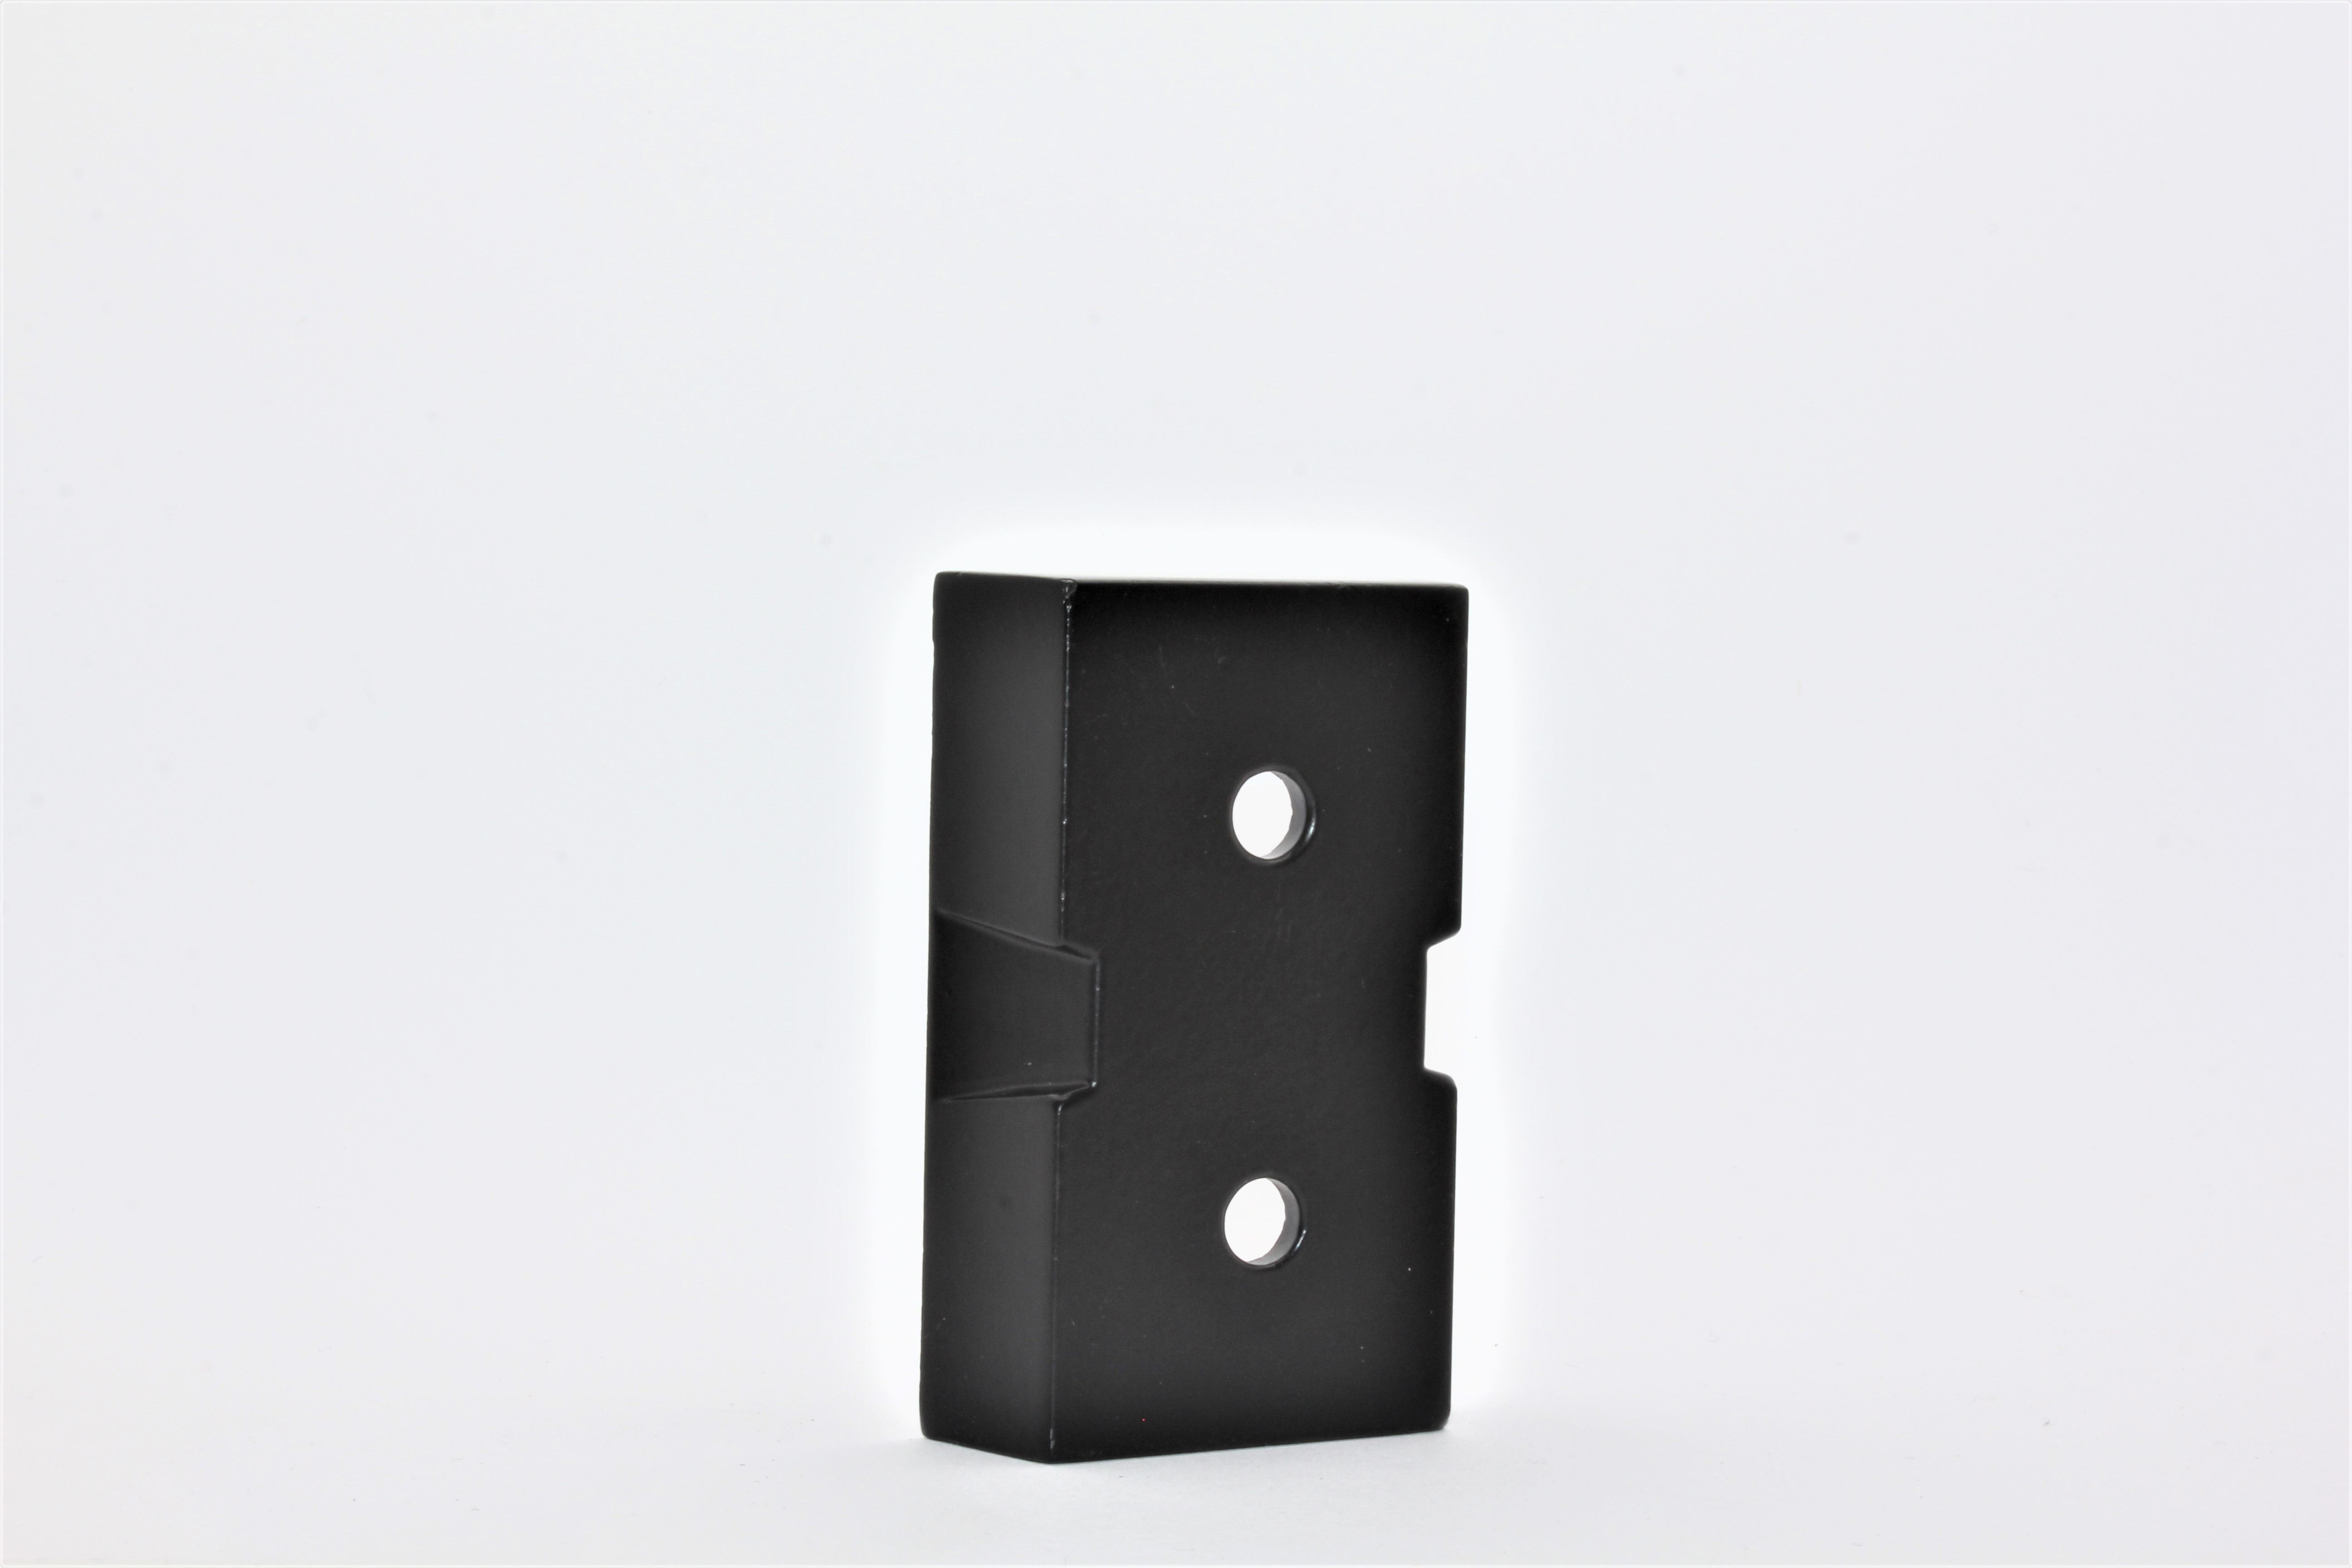 Sirius Vixen Dovetail Plate (Hollow) 70mm